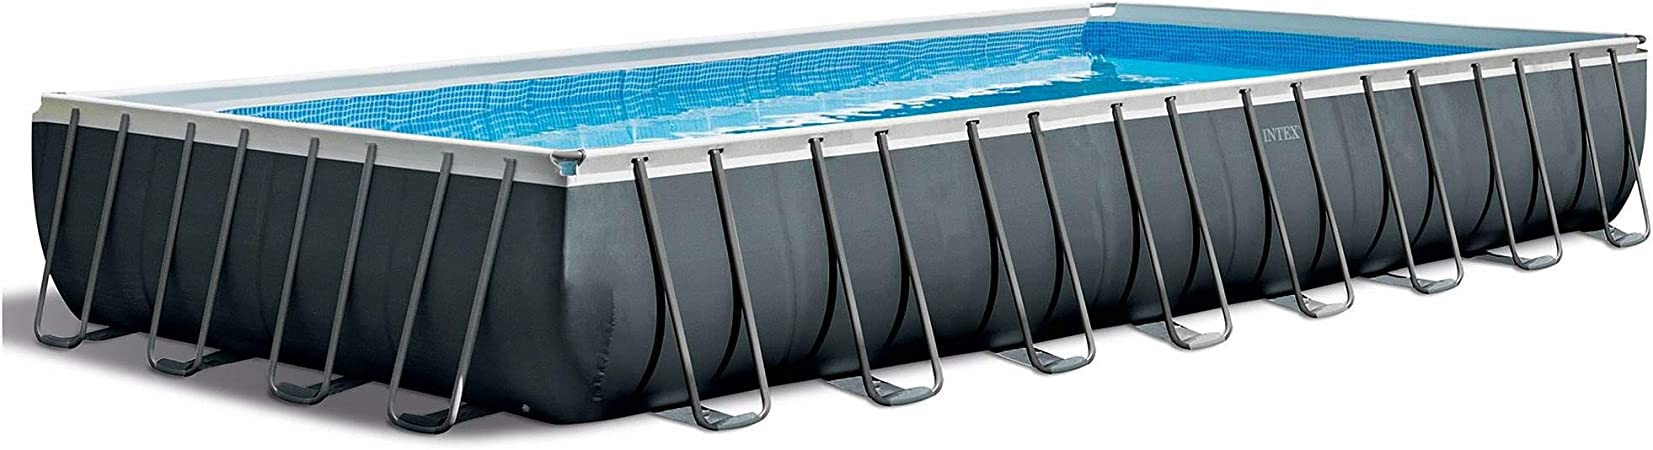 Amazon.com: Intex Ultra XTR - Piscina rectangular (32.0 x ...